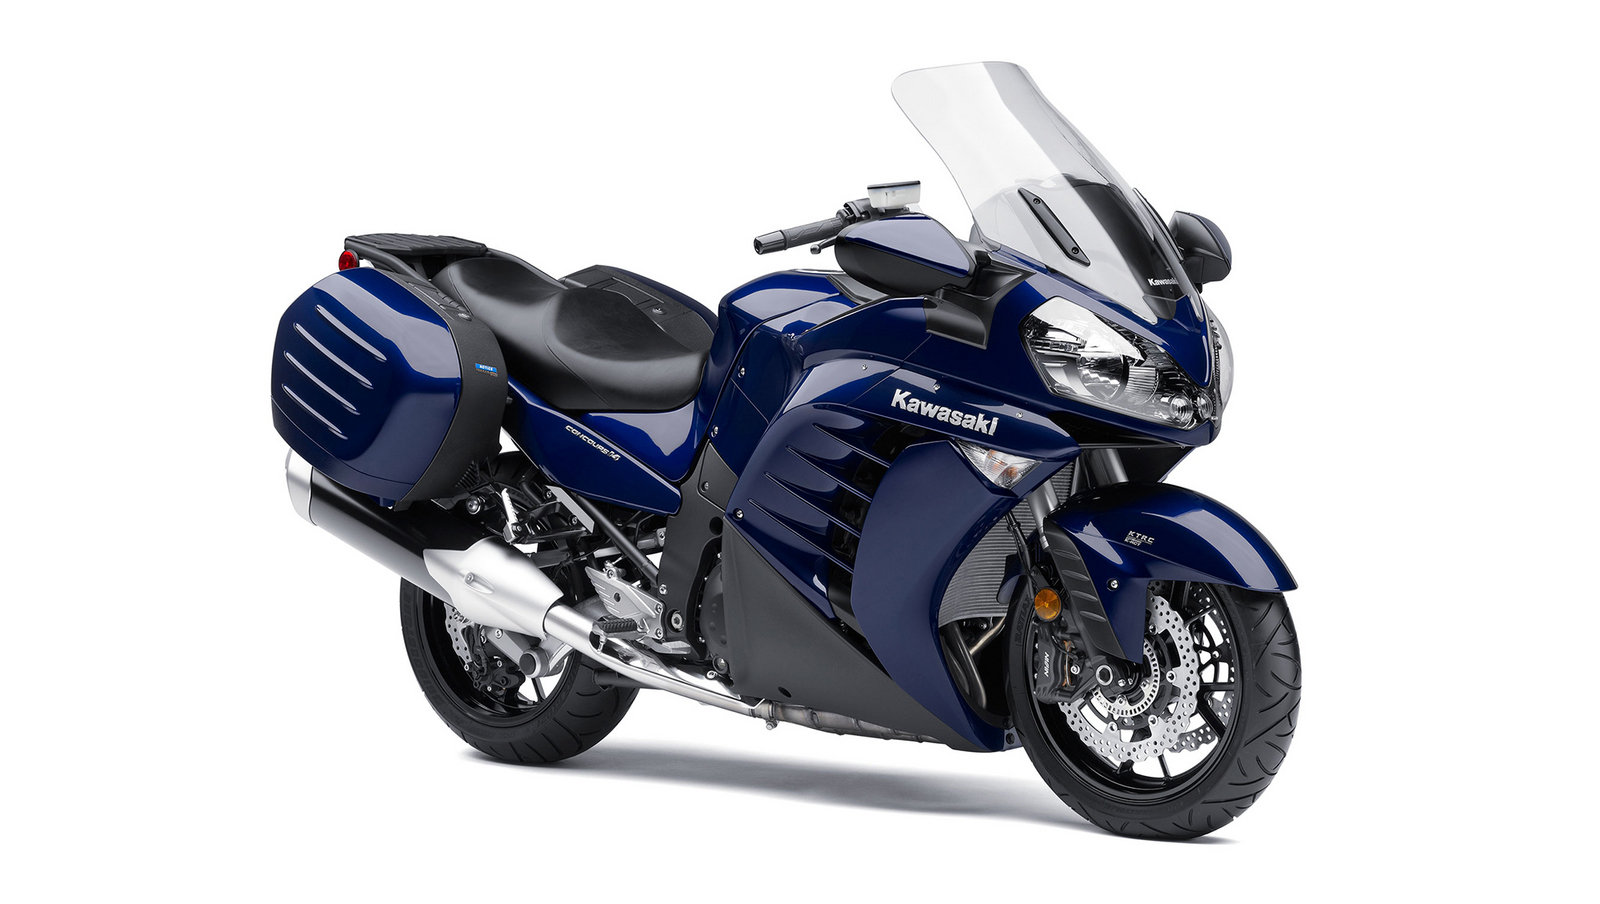 2013 Kawasaki Concours 14 1400GTR Review - Top Speed